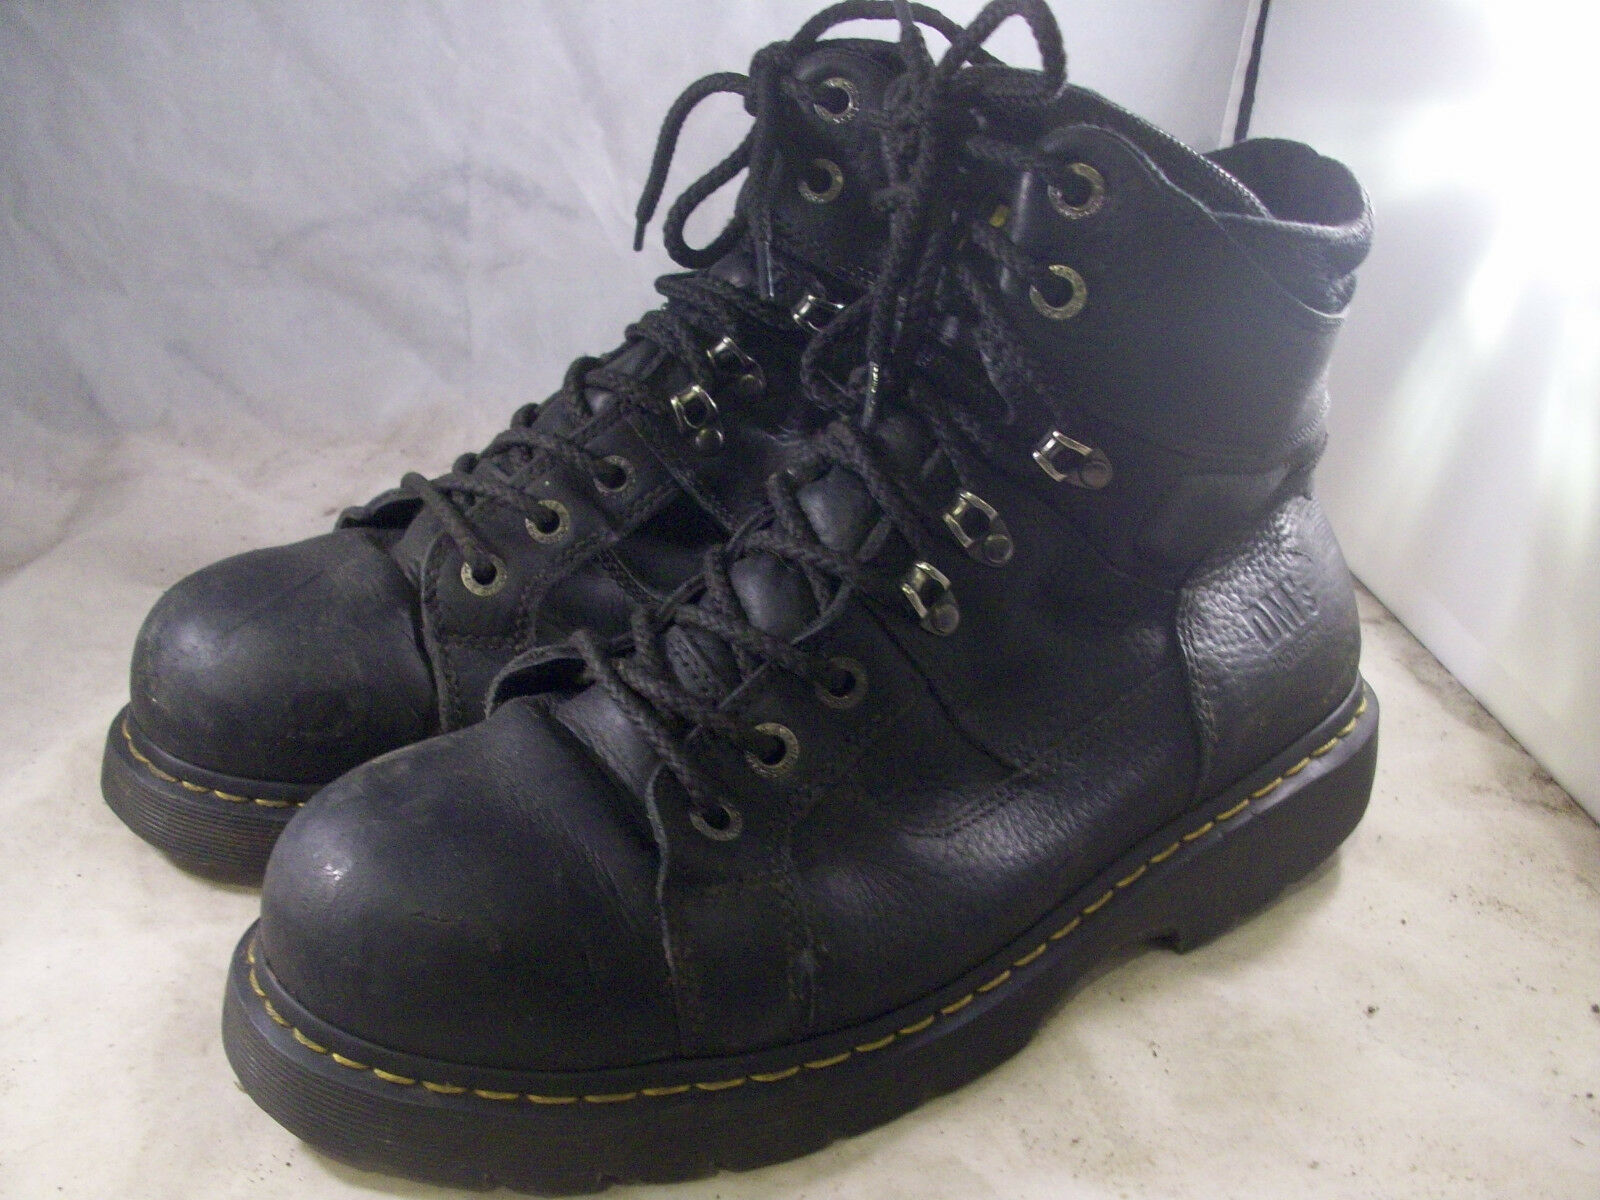 DR. DR. DR. MARTENS herren IRONBRIDGE STEEL TOE Stiefel schwarz LEATHER 13 MEDIUM  135 d92619